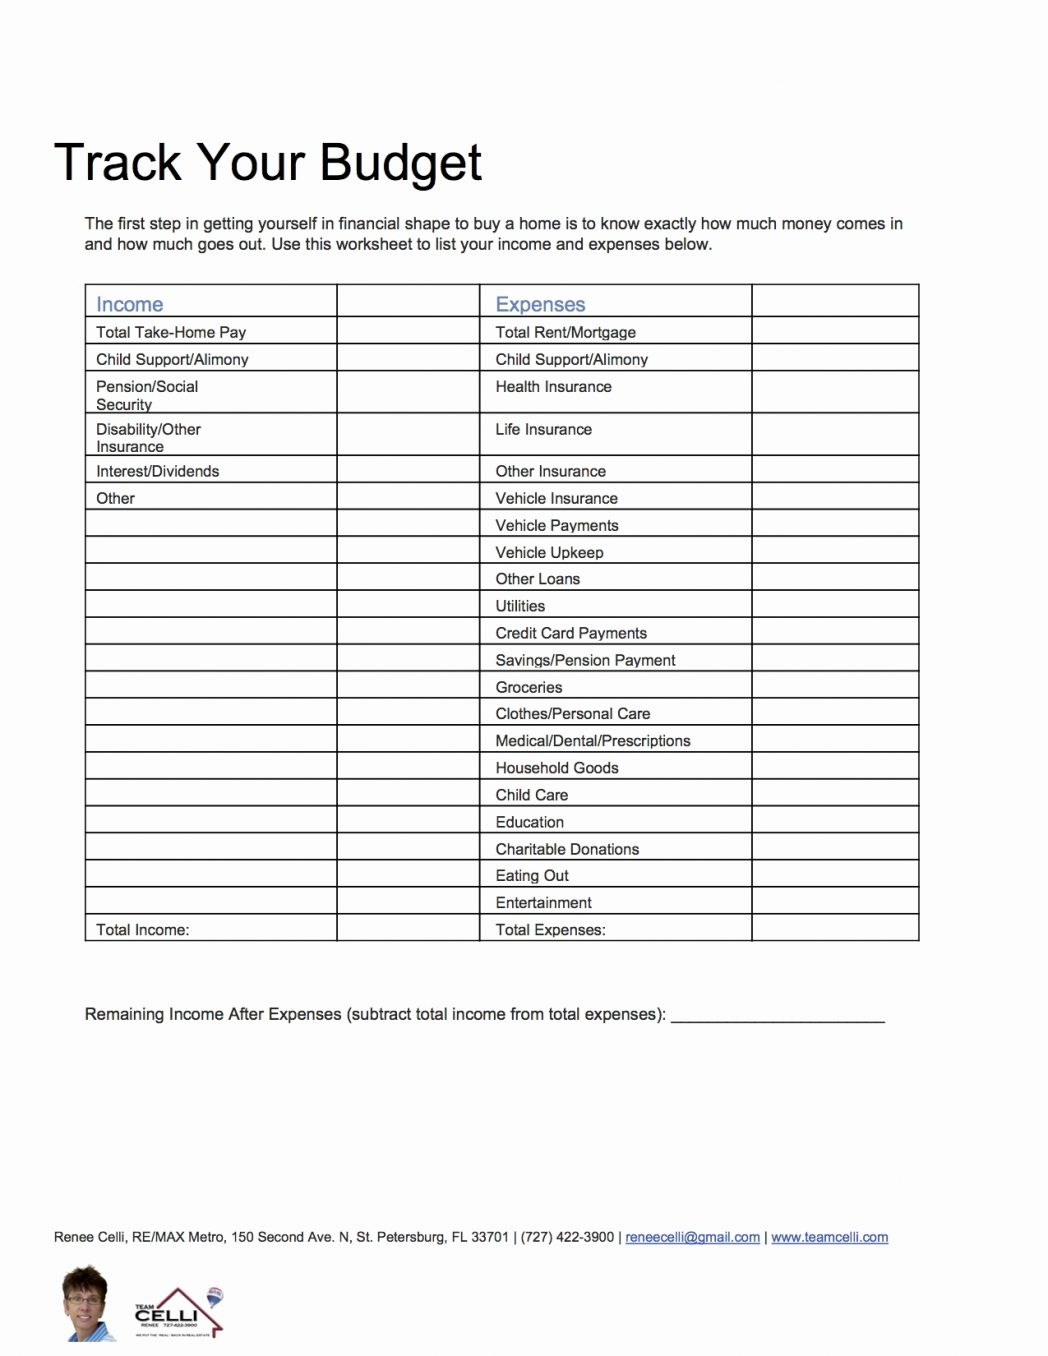 Home Buying Expenses Spreadsheet Spreadsheet Downloa Home